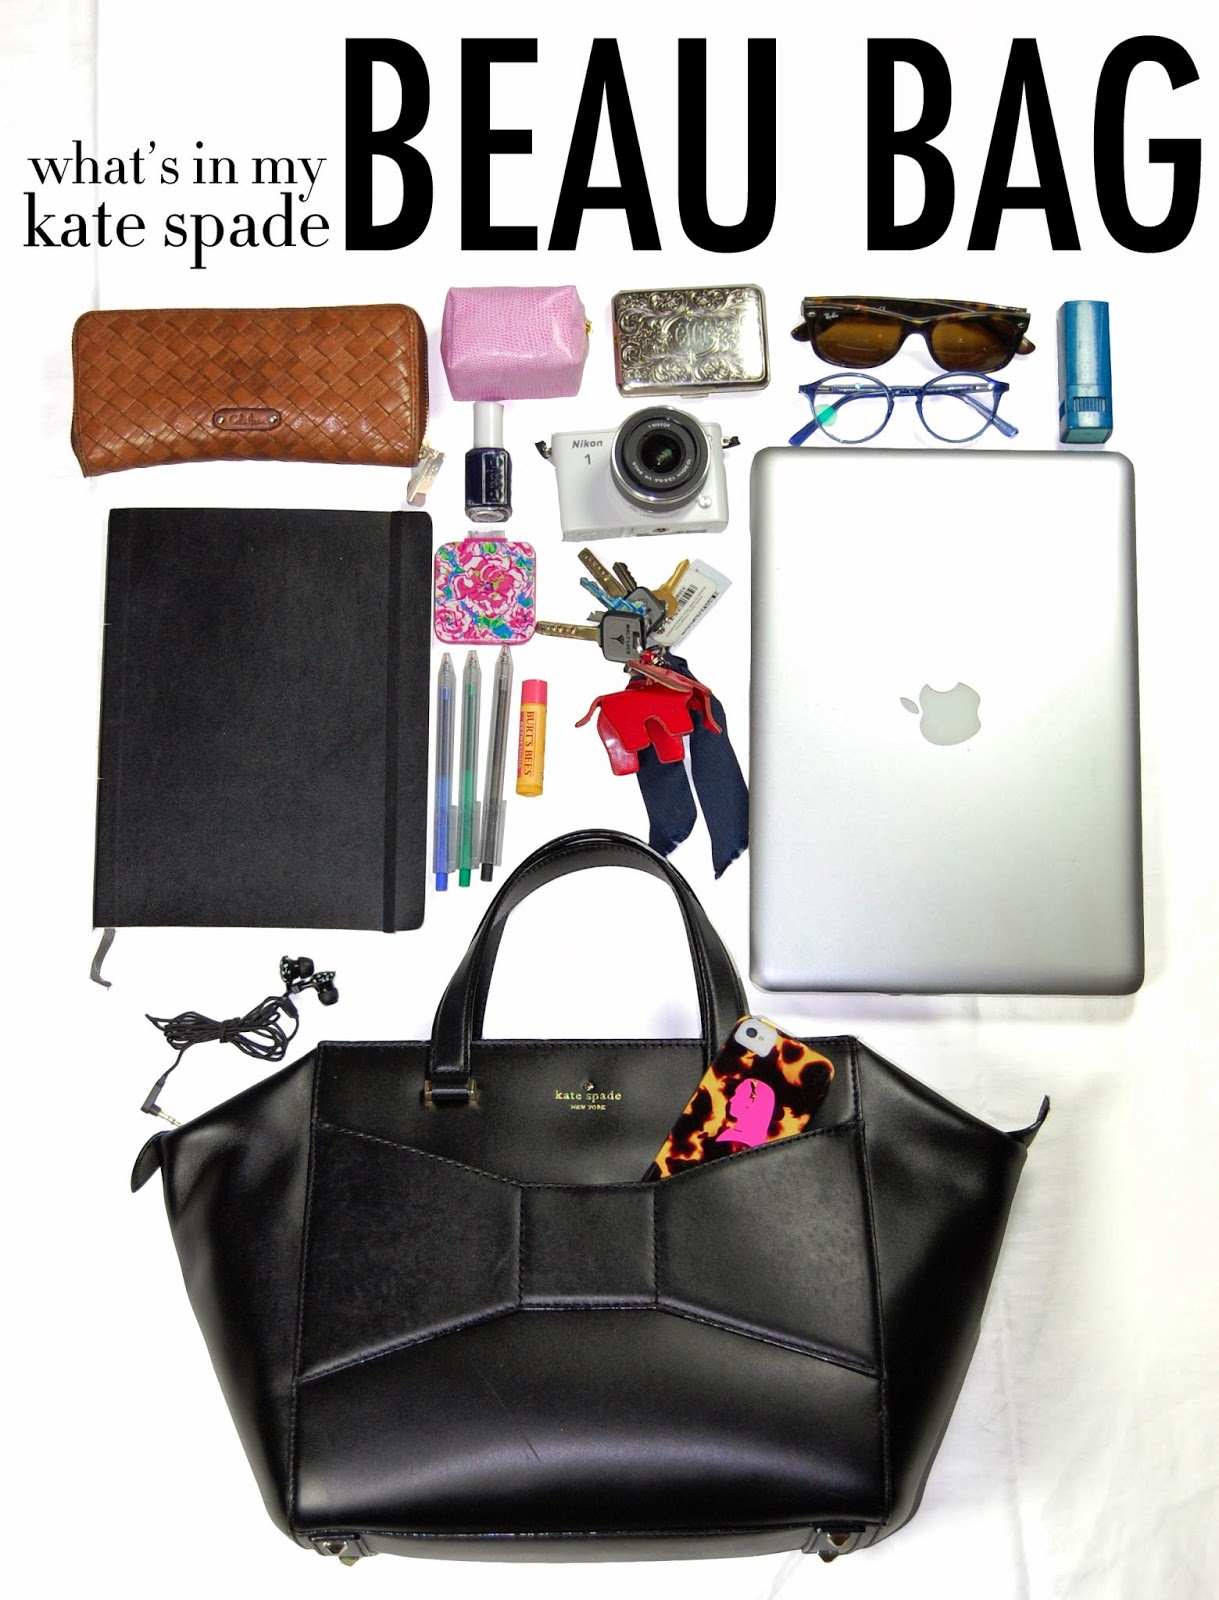 What S In My Kate Spade Beau Bag